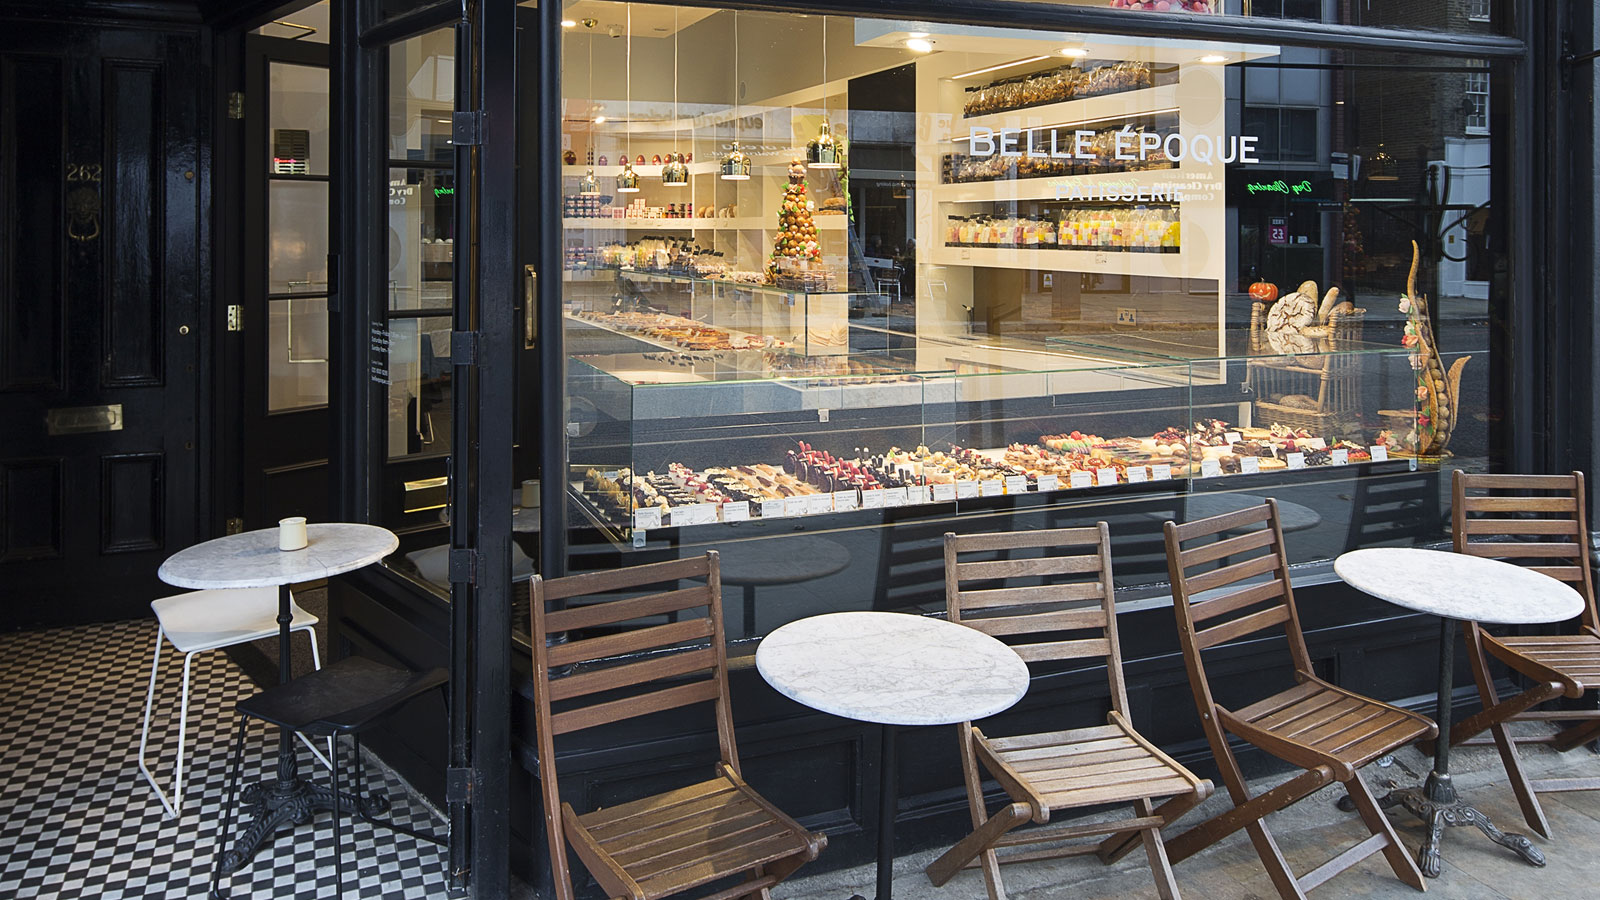 Belle Époque Patisserie London's most romantic cafes